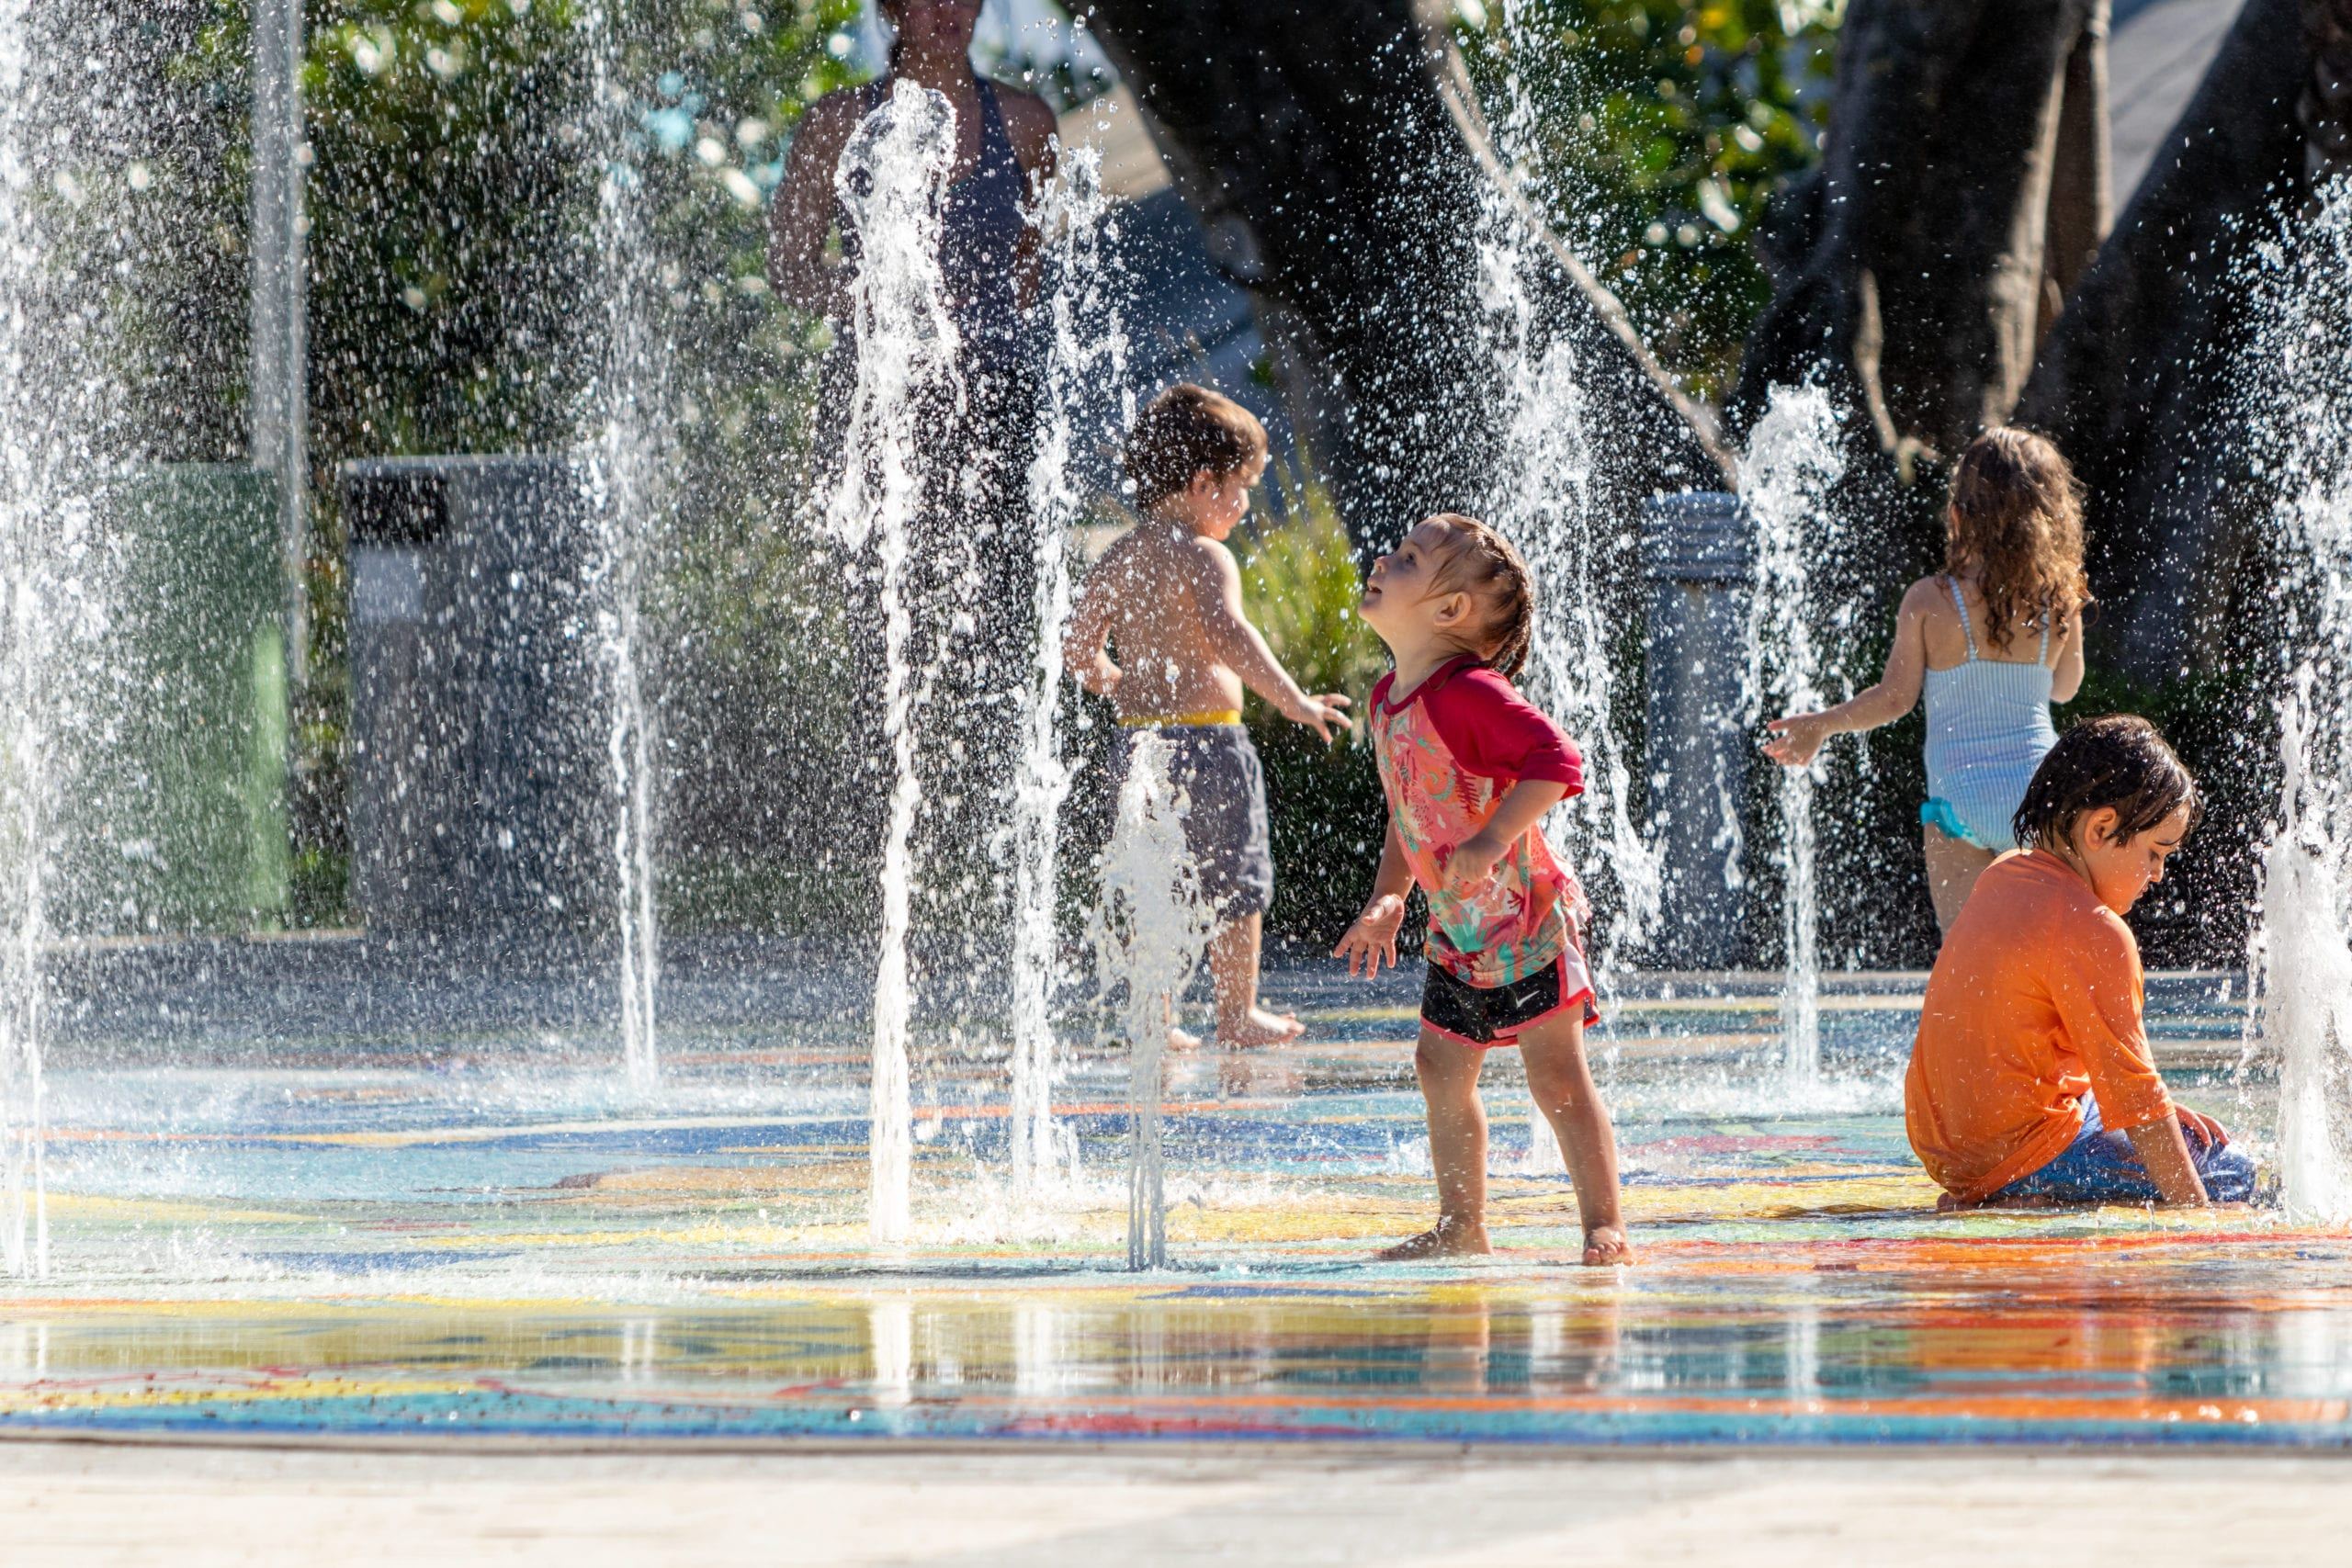 The 5 Best Splash Pads in the USA (2021) - FamilyVacationist